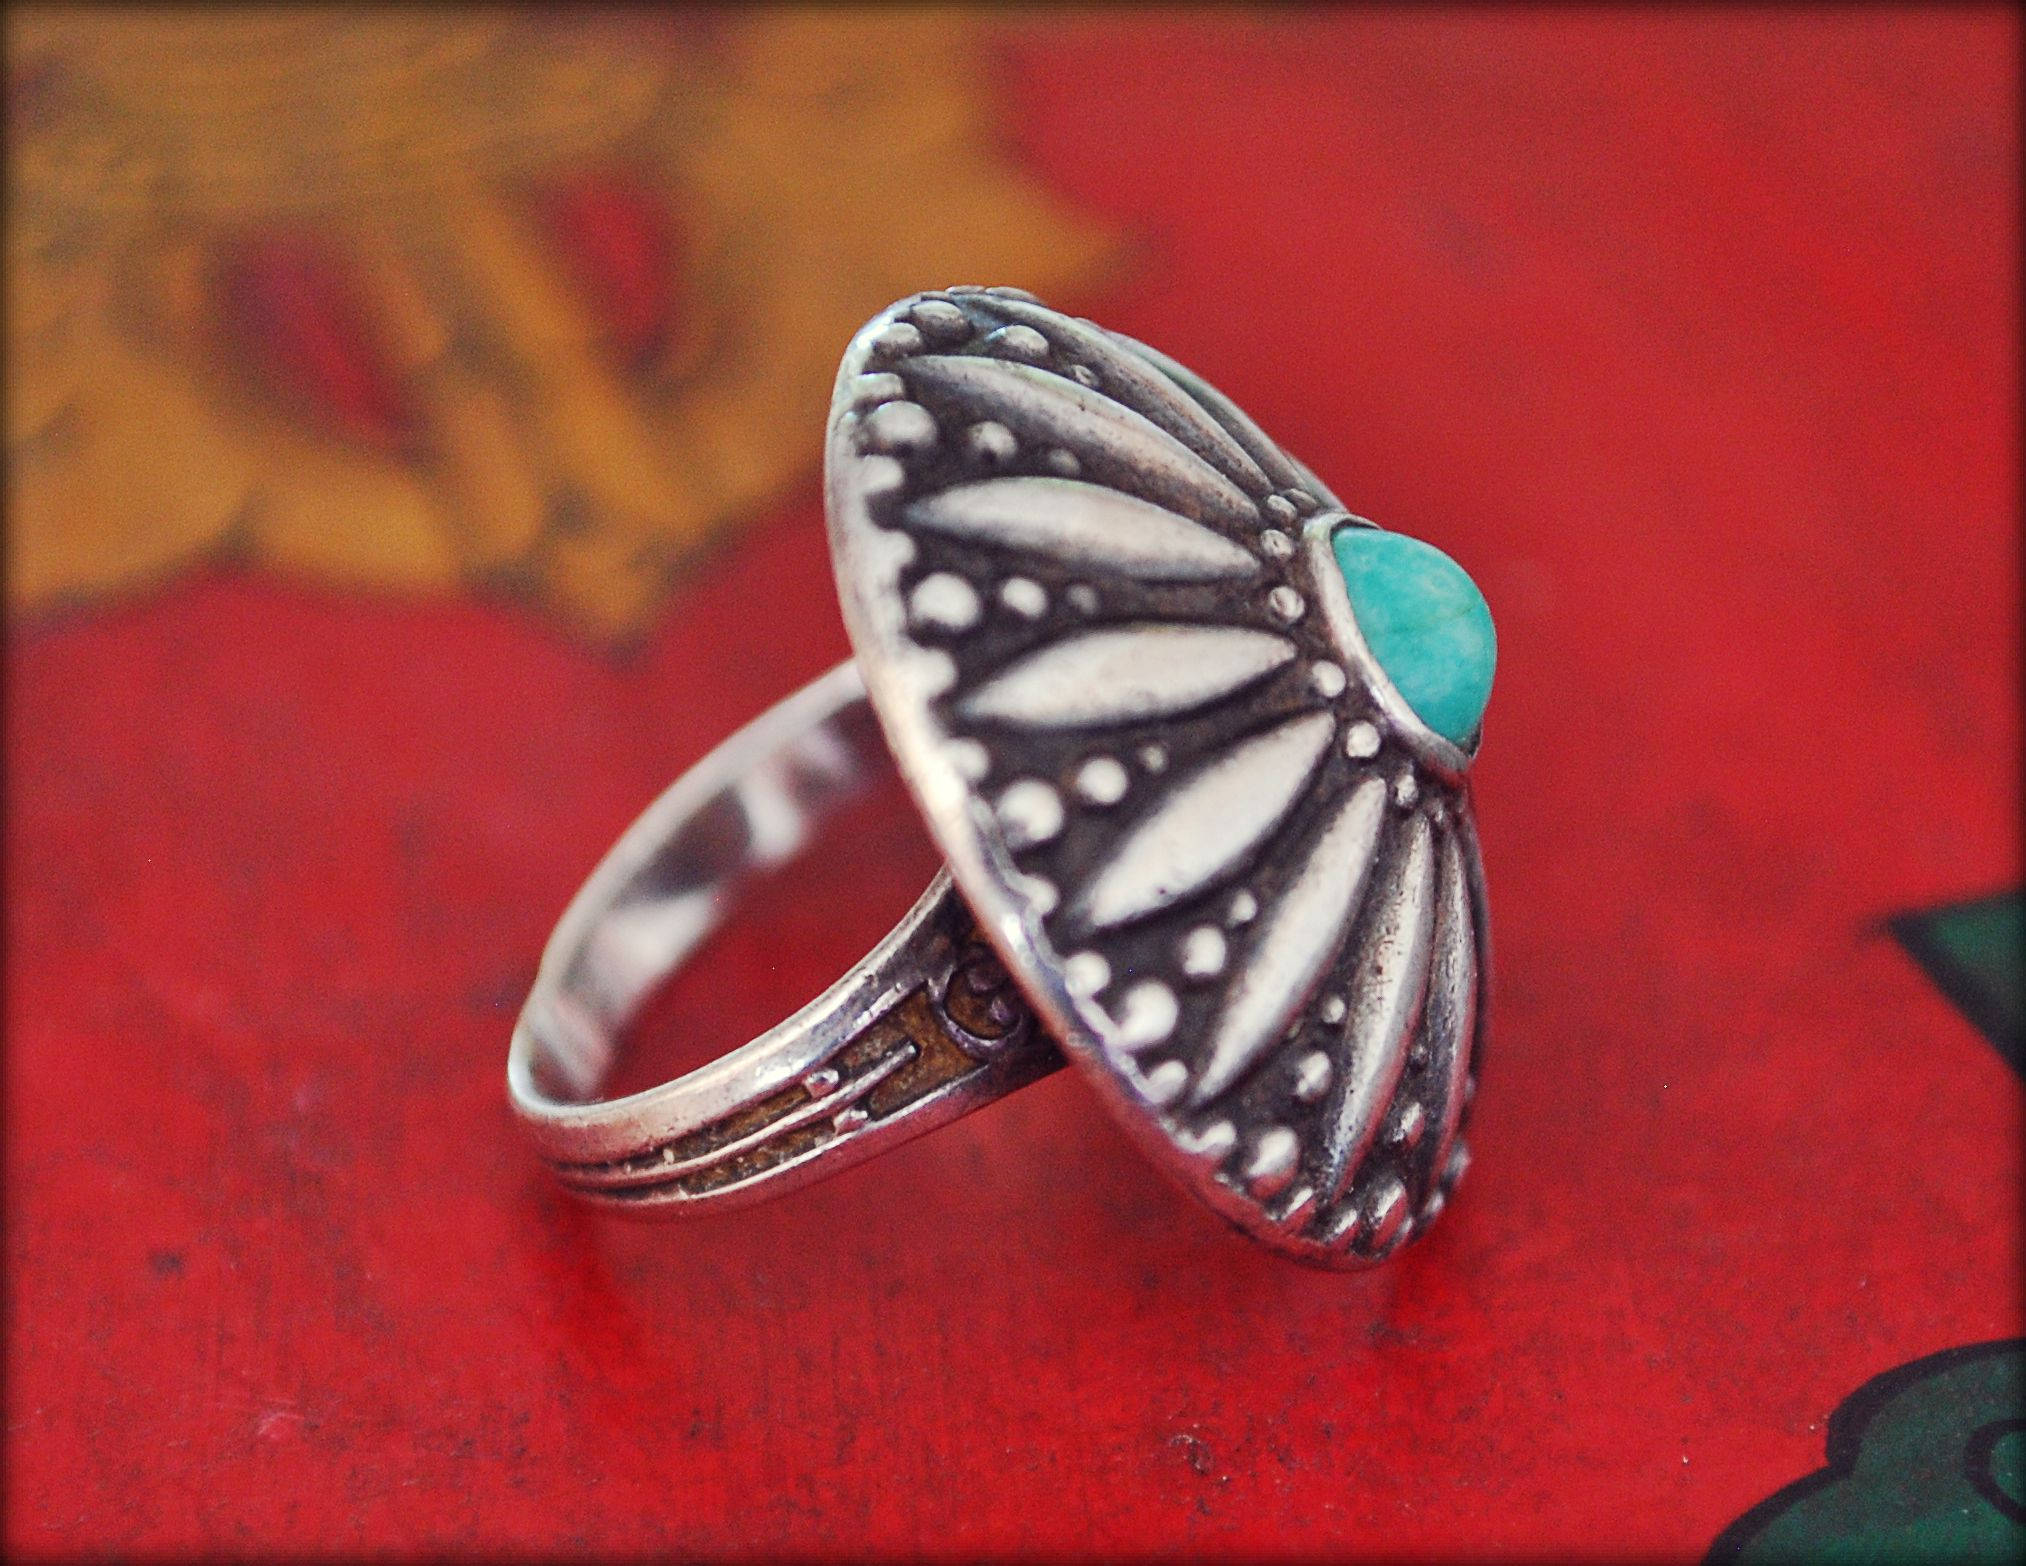 Rajasthani Silver Ring with Turquoise - Size 7 - Rajasthani Silver - Rajasthani Jewelry - Ethnic Tribal Indian Silver Ring